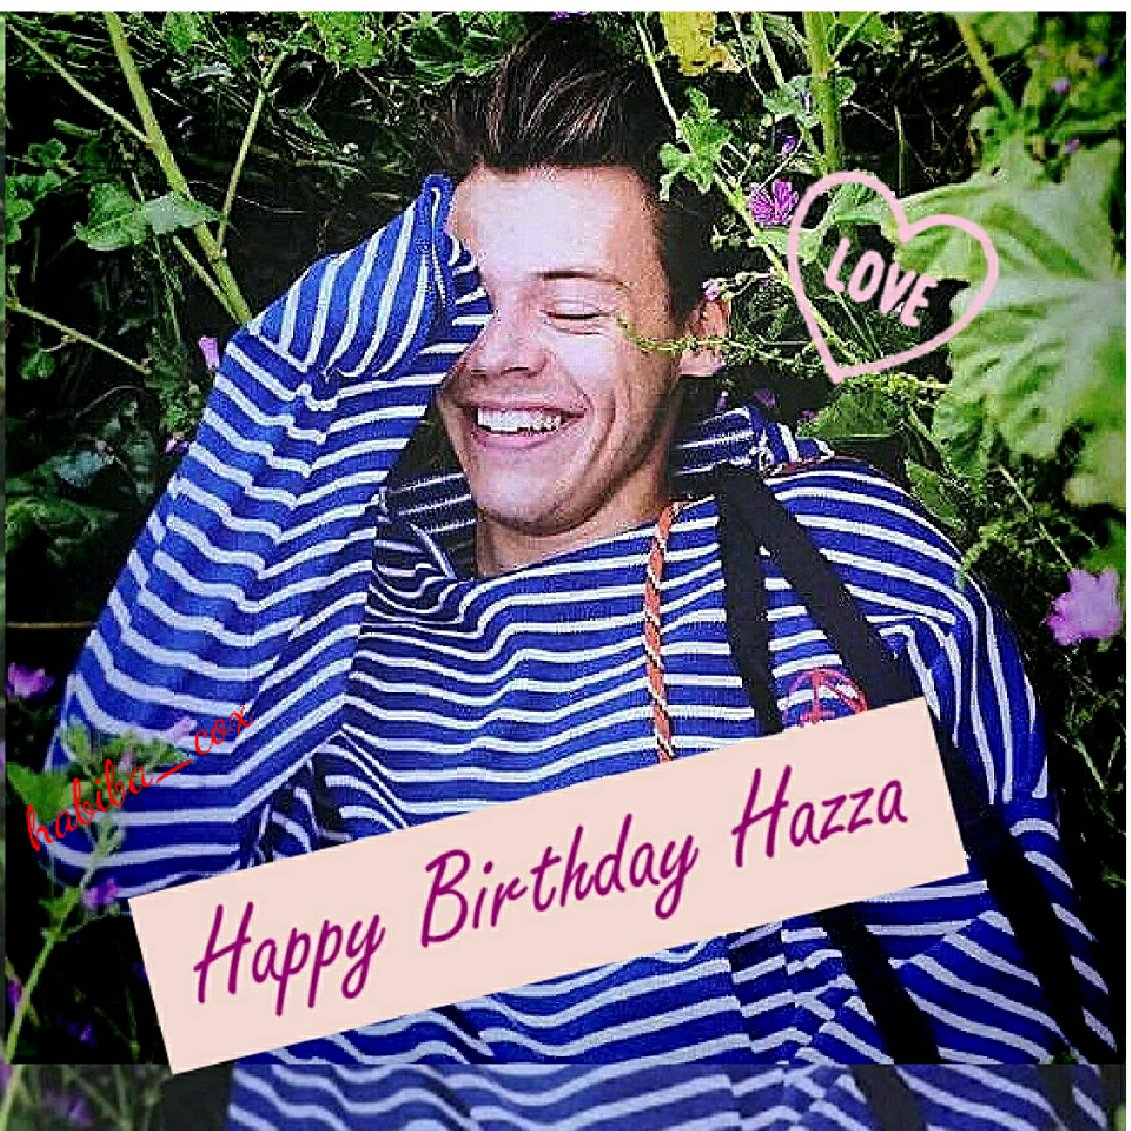 Happy birthday HAZZA